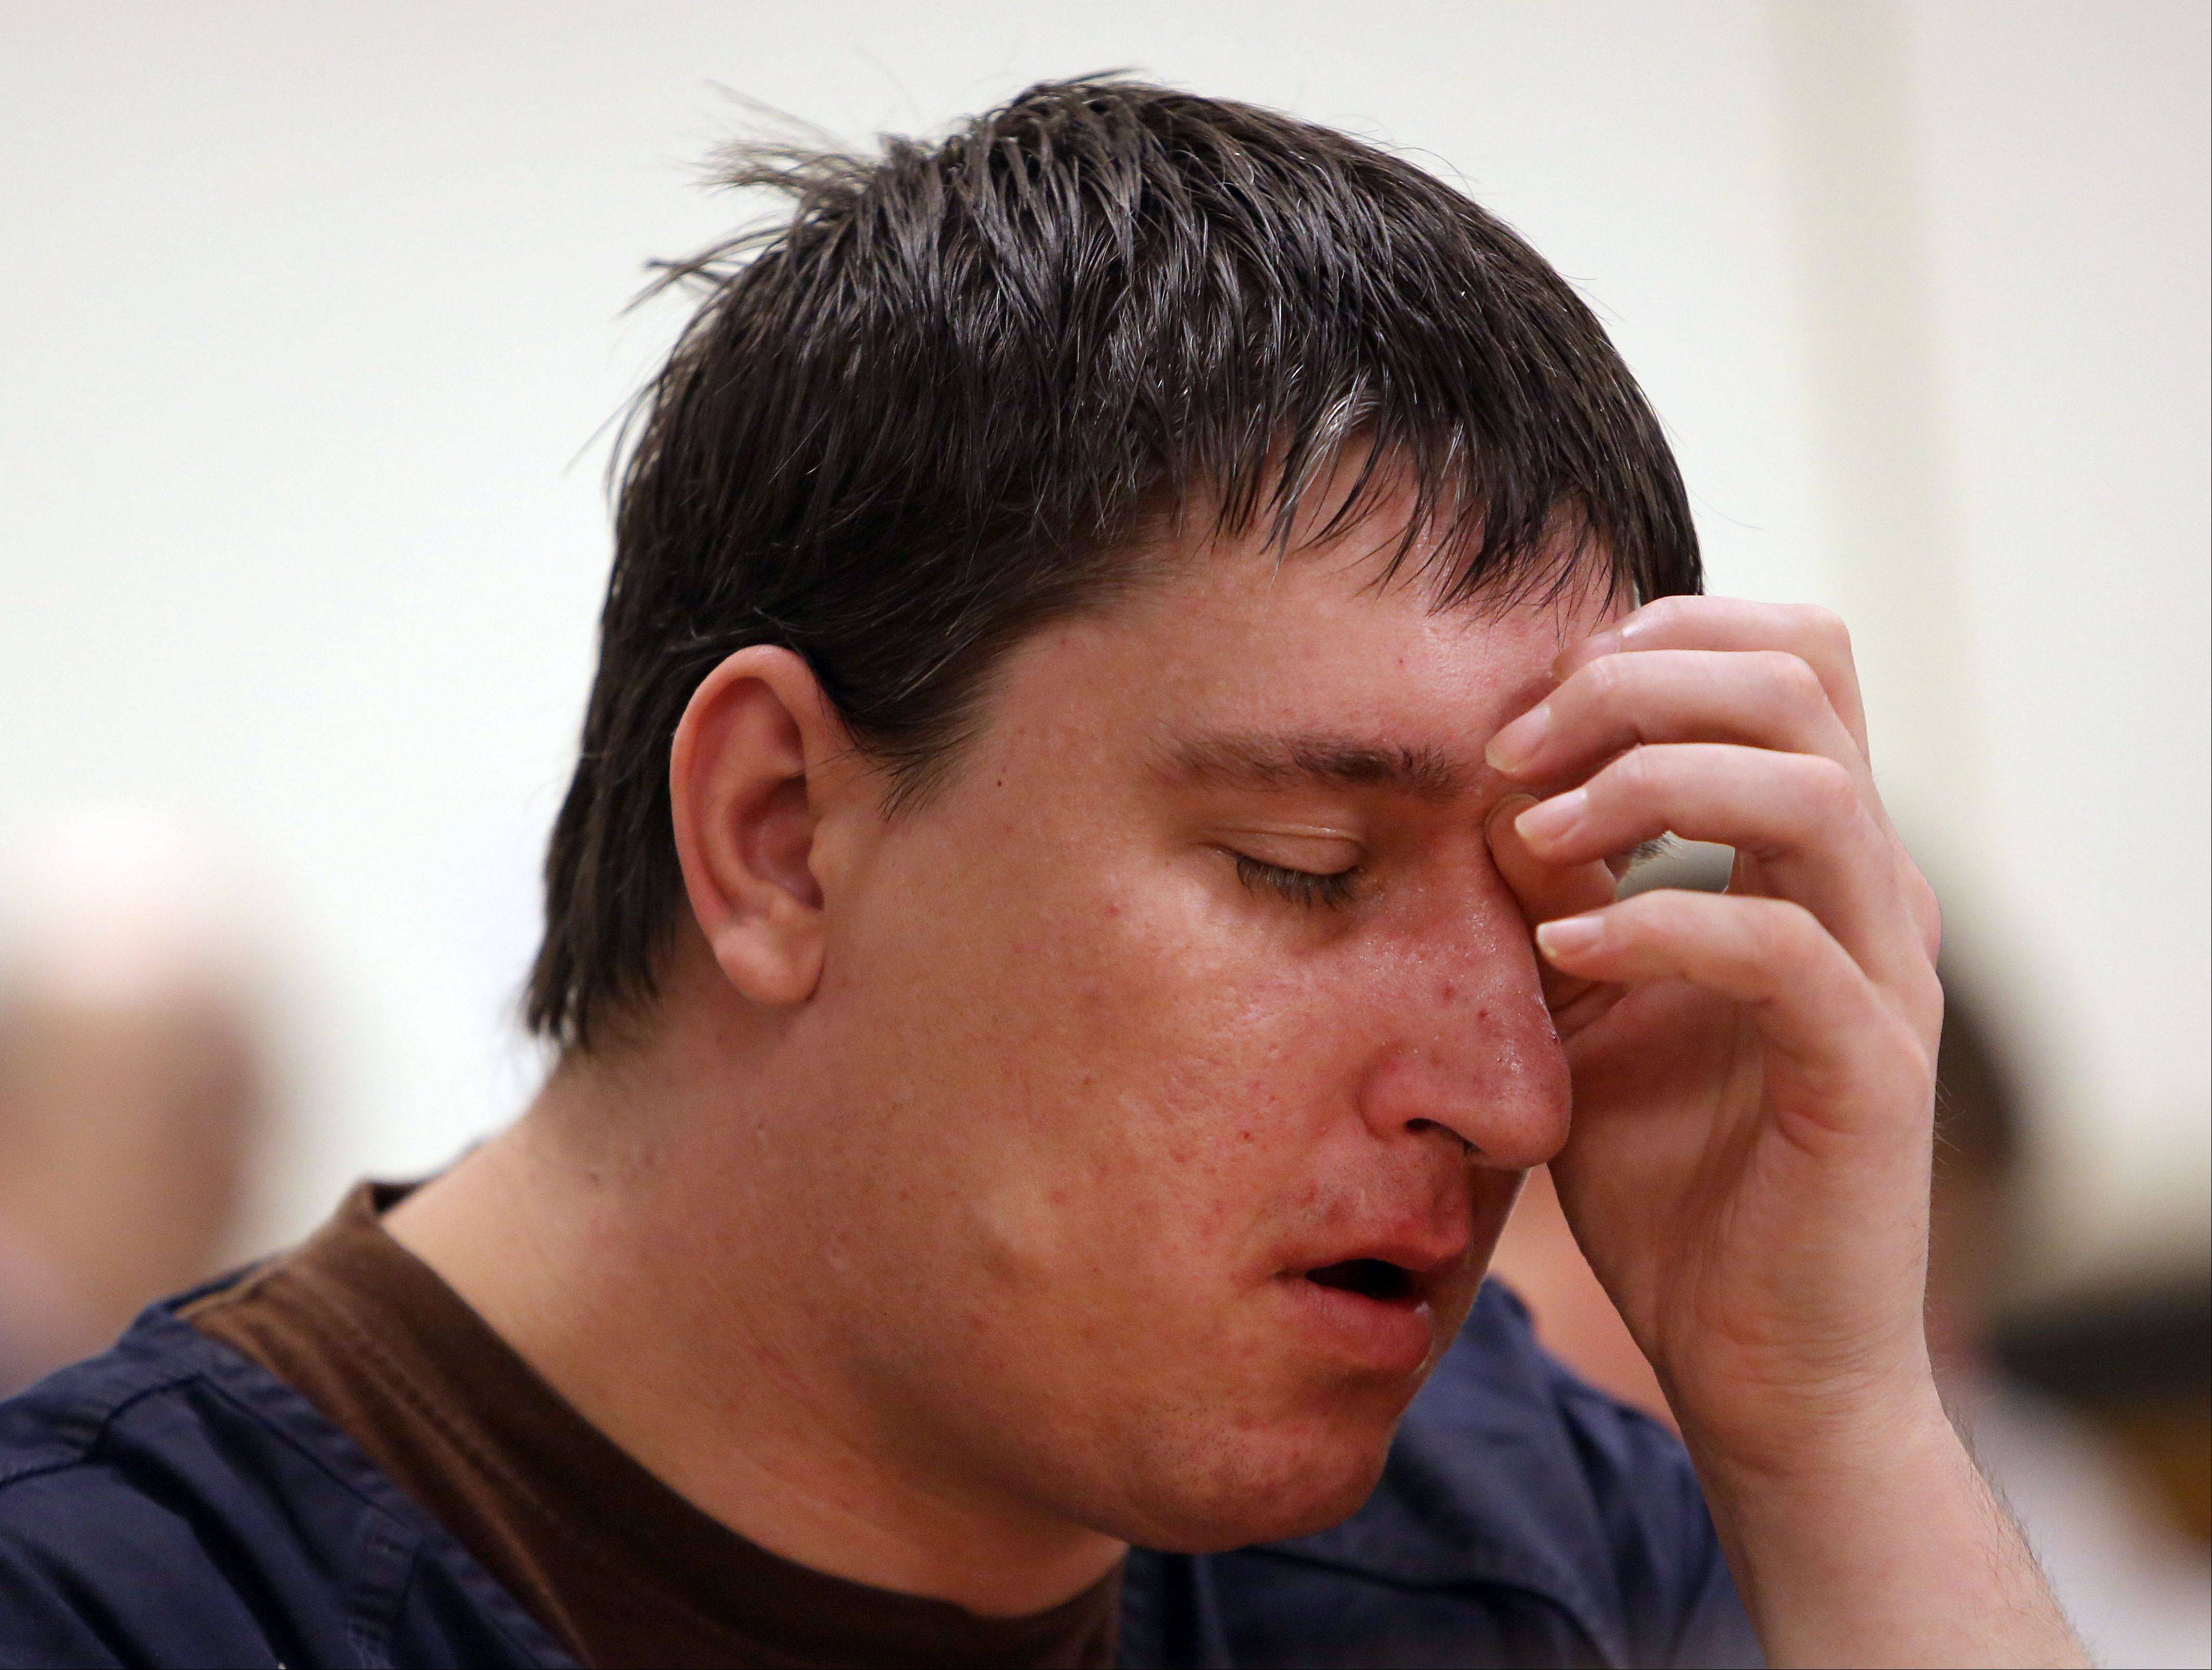 Brian Stedronsky, 33, of Ingleside, weeps as victim impact statements are read Wednesday during his sentencing hearing before Lake County Judge Mark Levitt in Waukegan. Stedronsky received a six-year sentence after pleading guilty to selling a fatal dose of a potent pain medication to a friend in 2012.